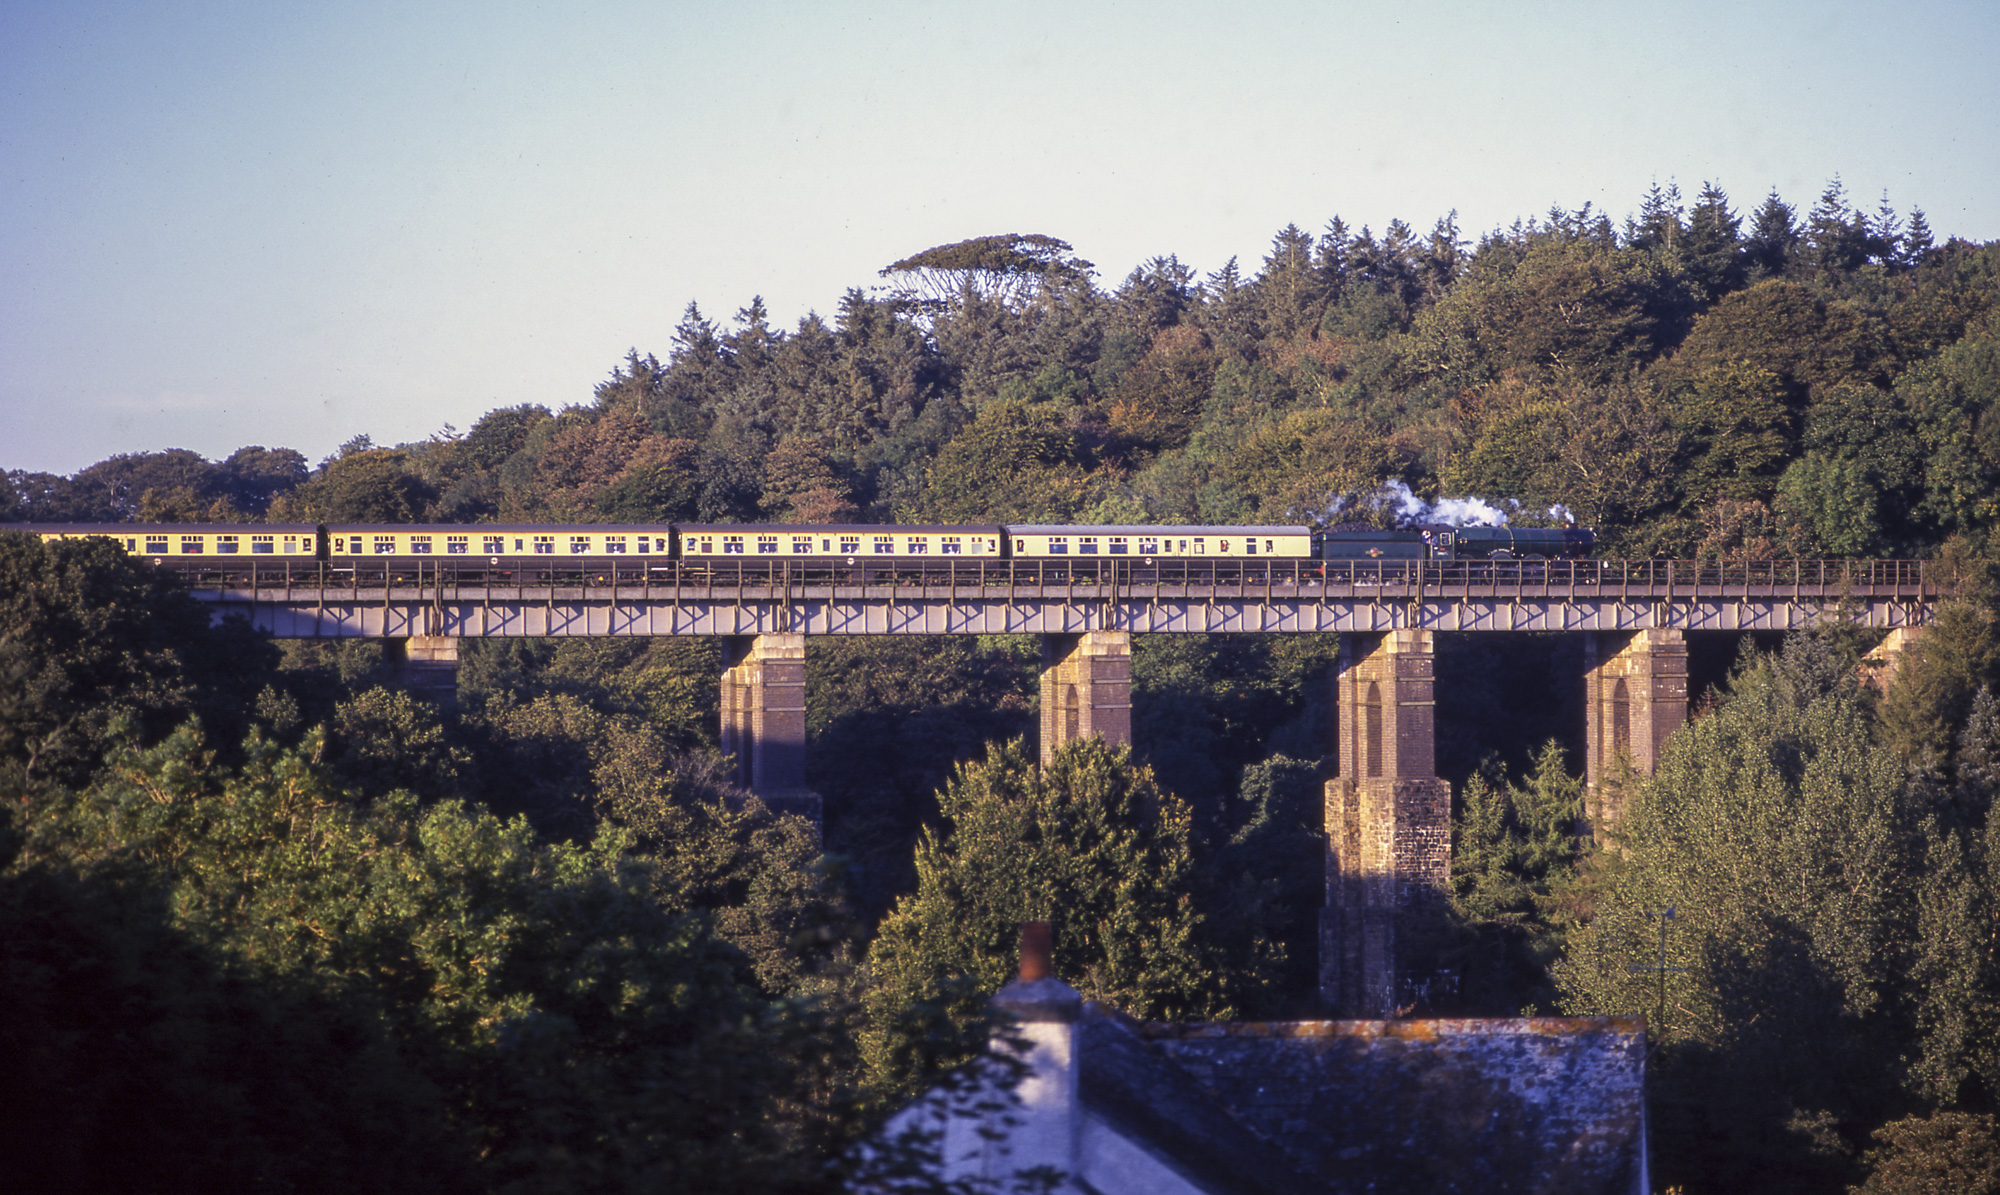 No. 6024 crosses Cold Rennick viaduct in Cornwall, 20 Septmber 1998. © Martyn Bane